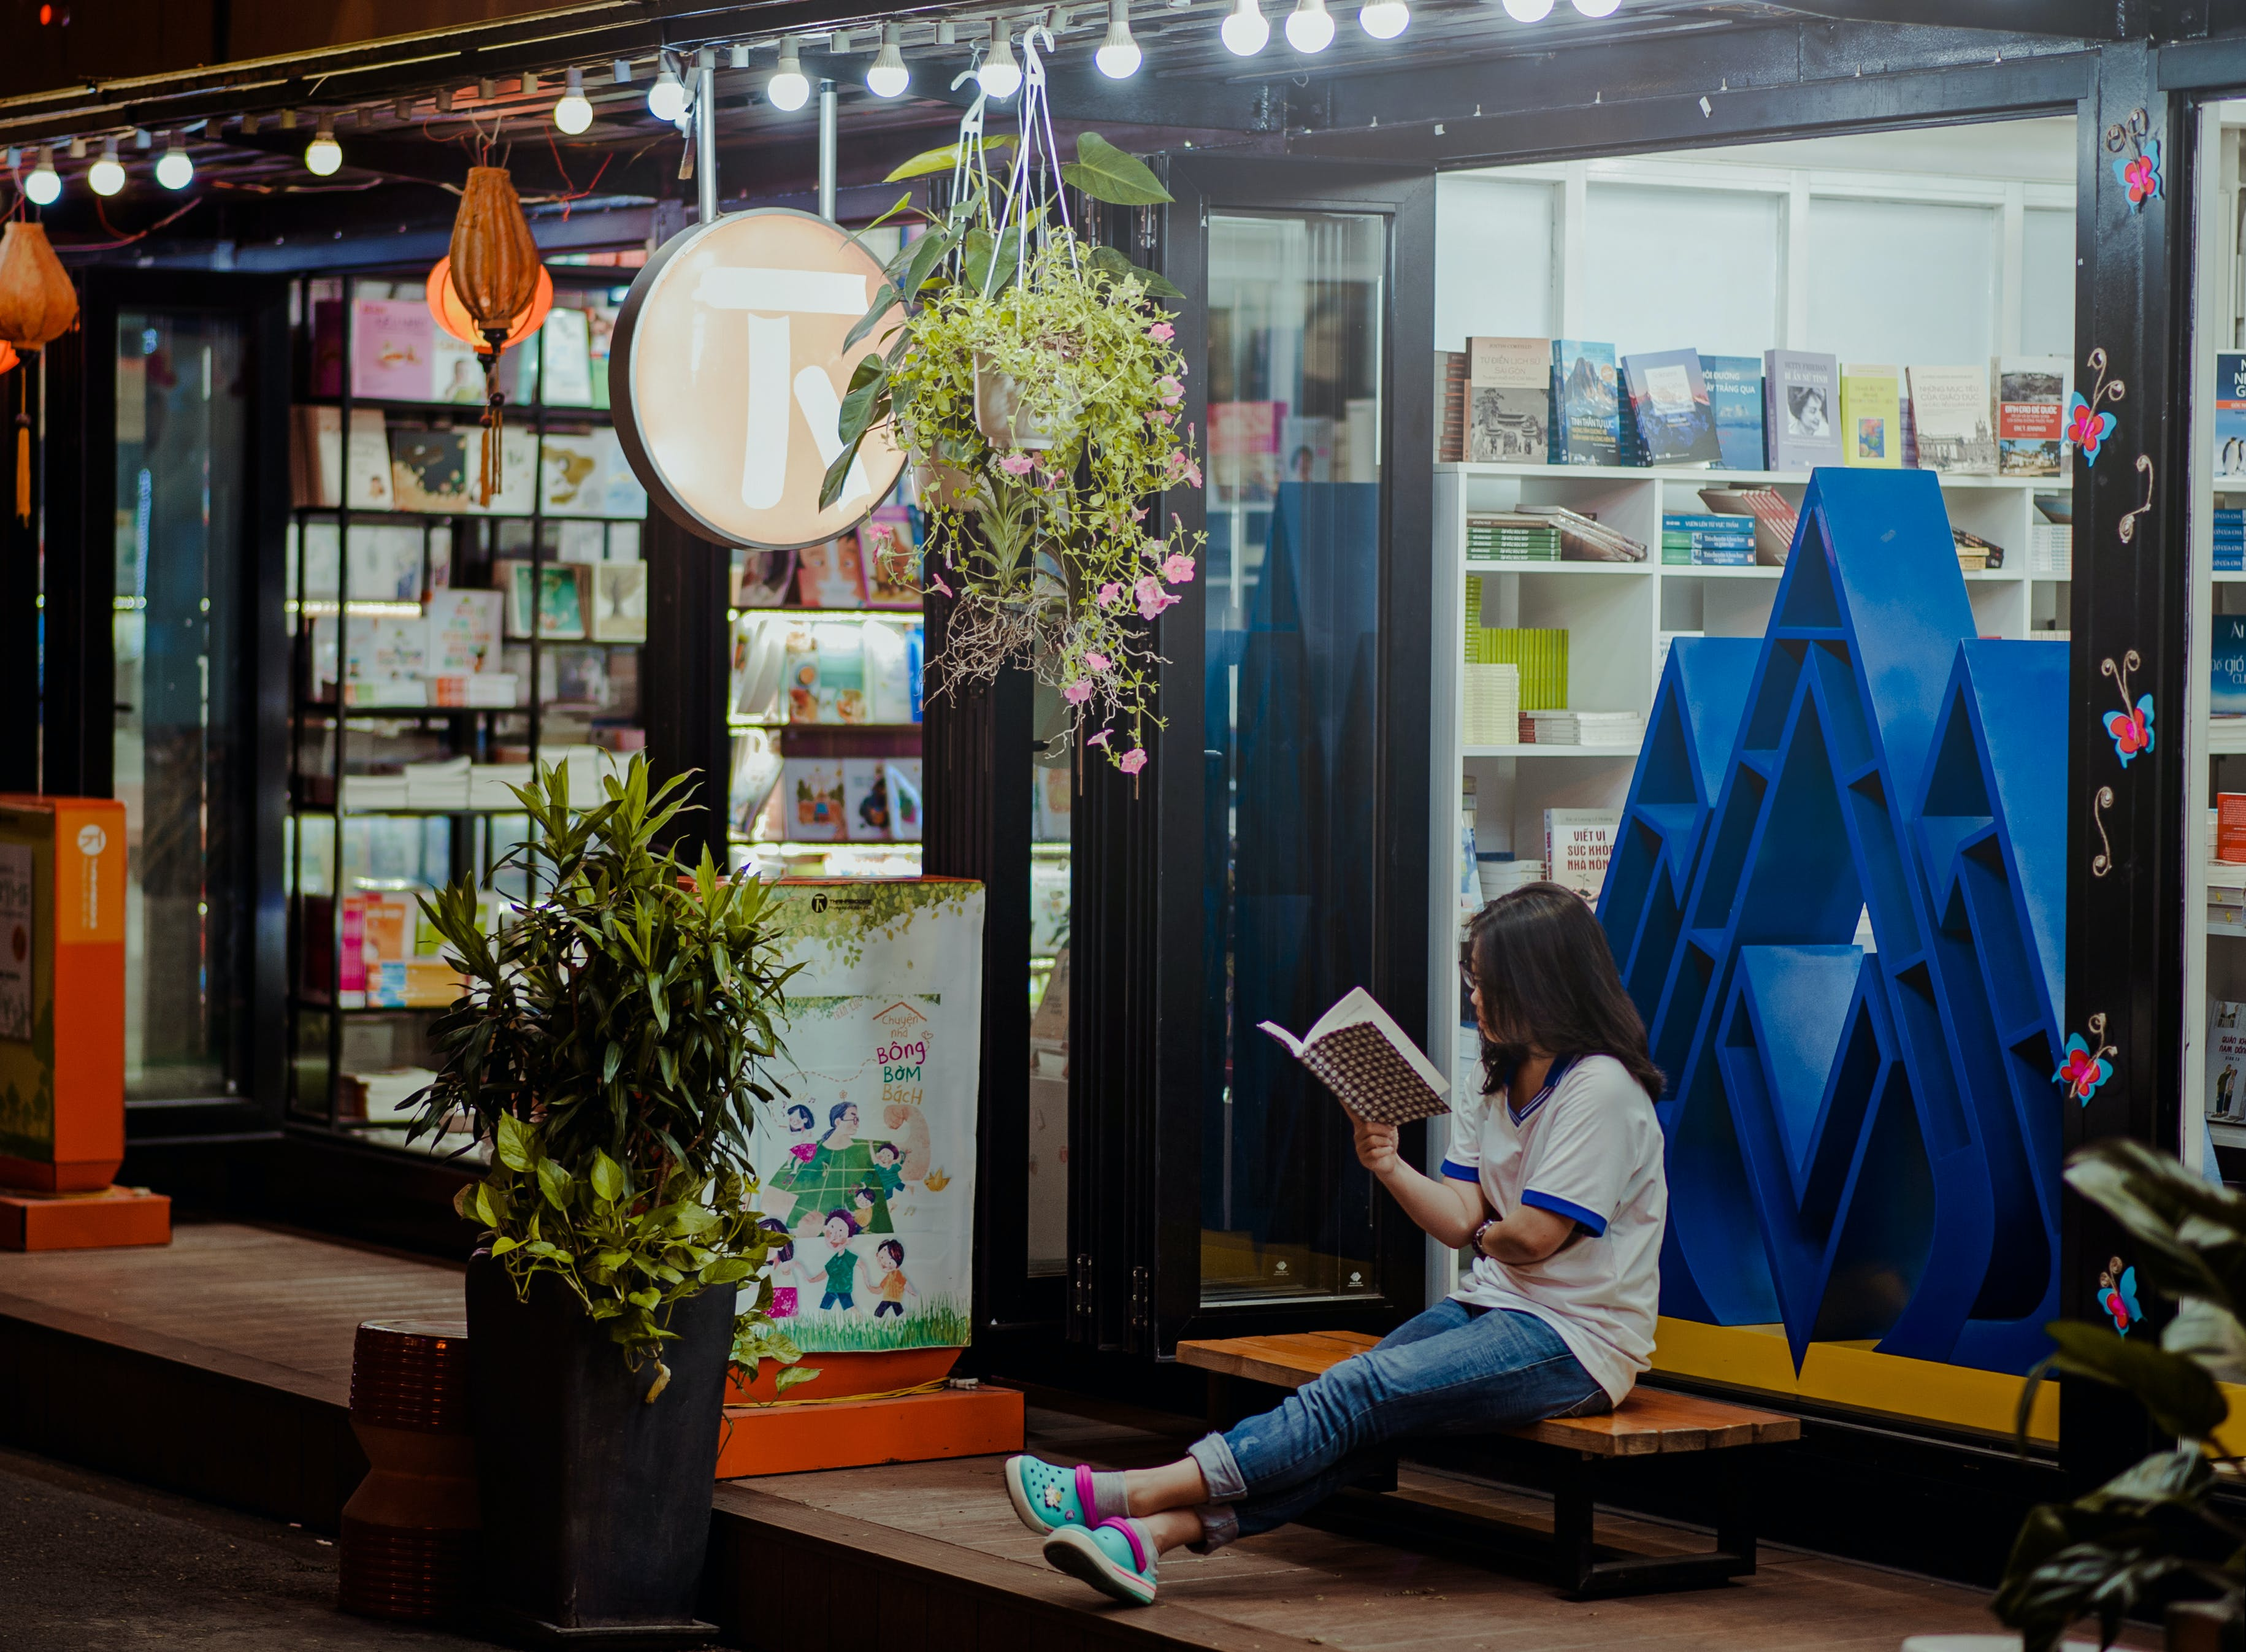 Woman Sitting Down On Bench And Reading Infront of Store